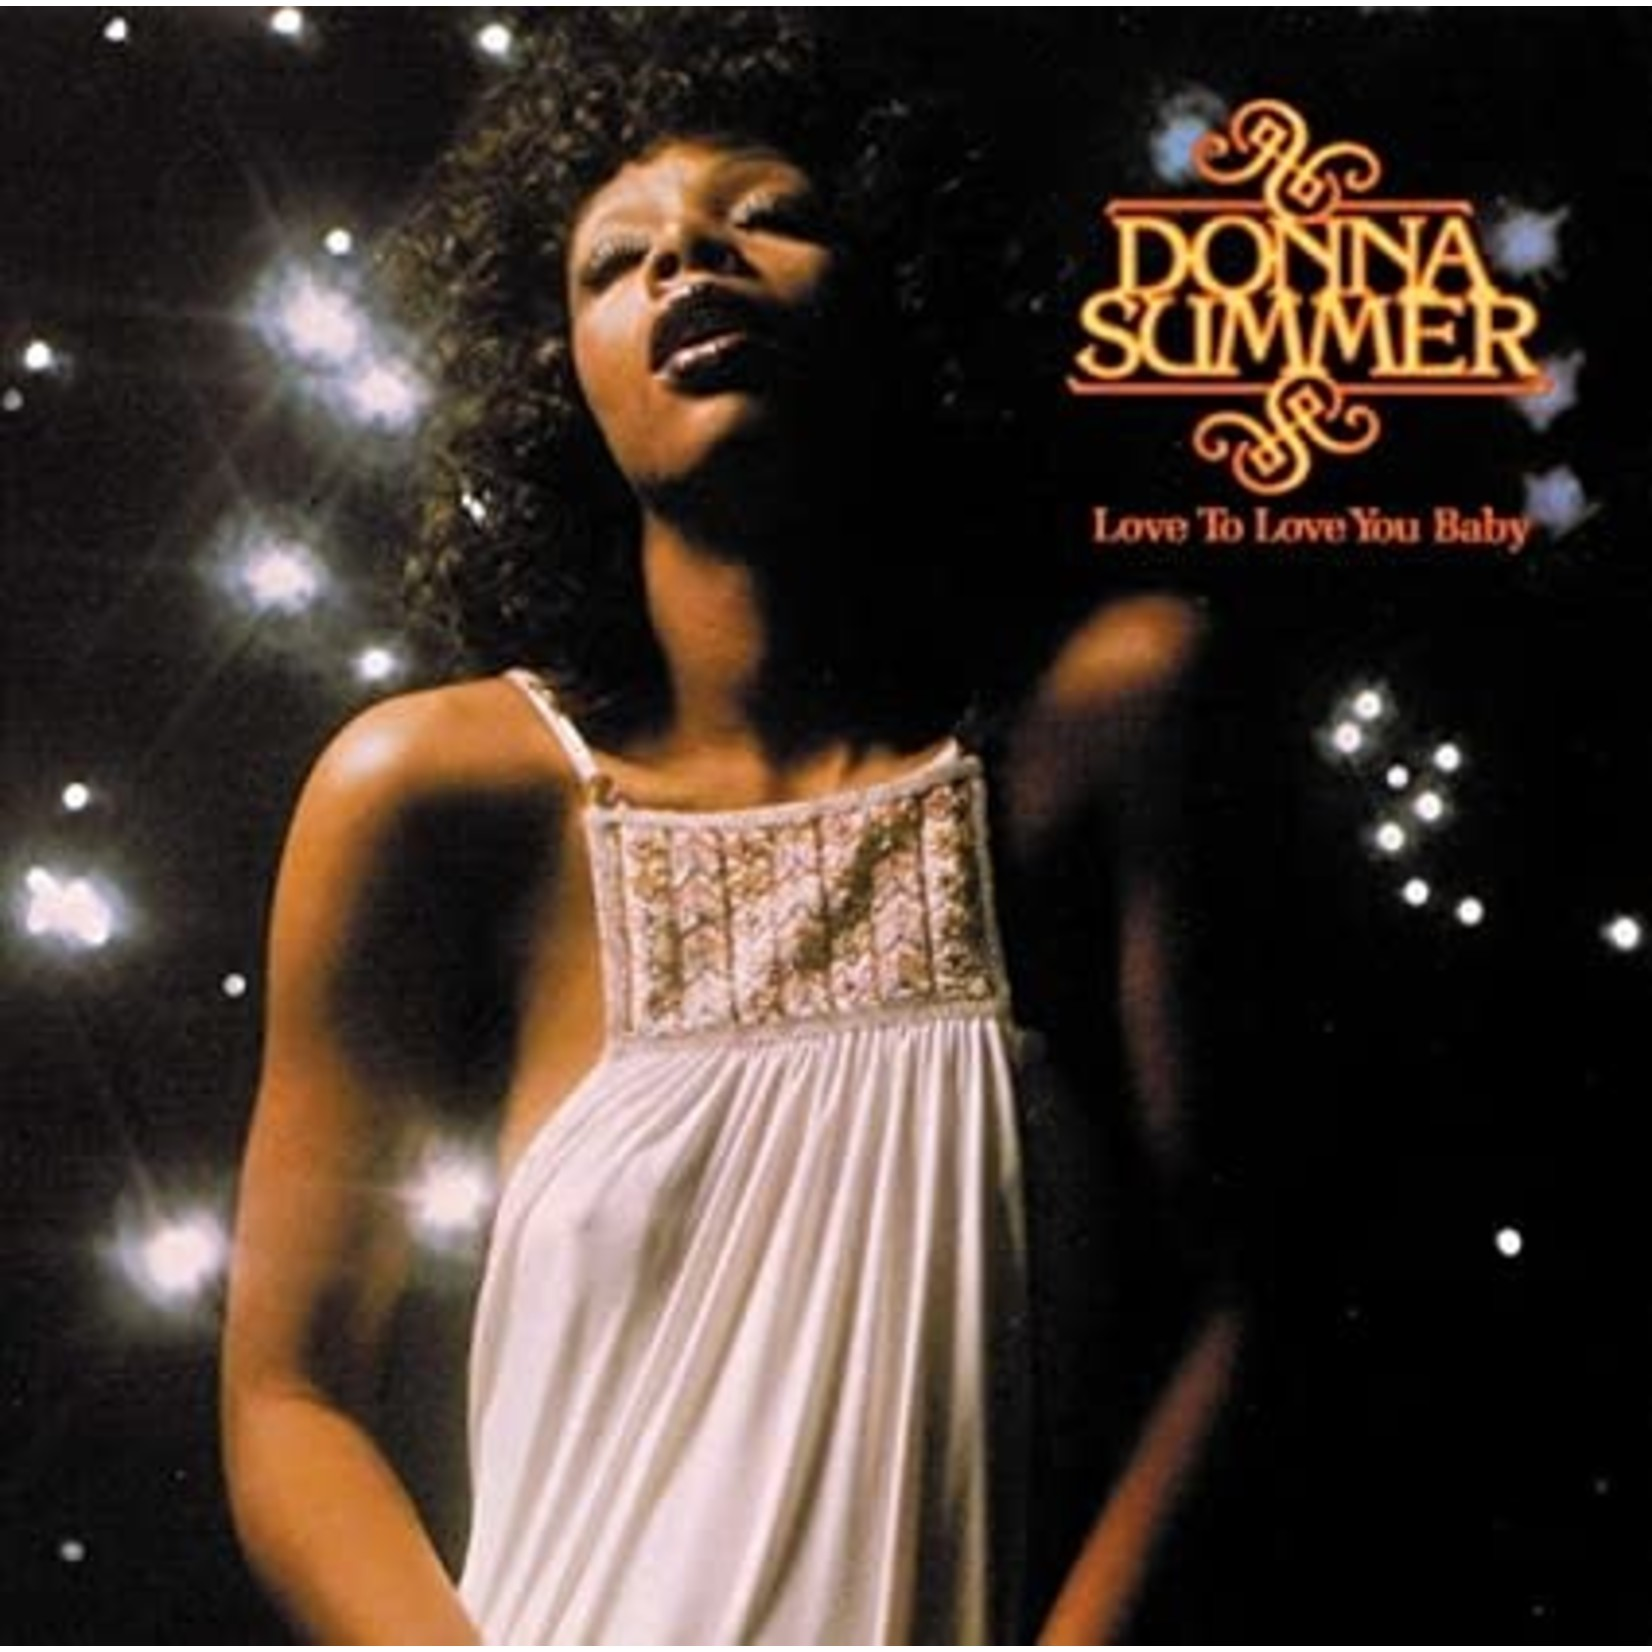 [Vintage] Summer, Donna: Love to Love You Baby